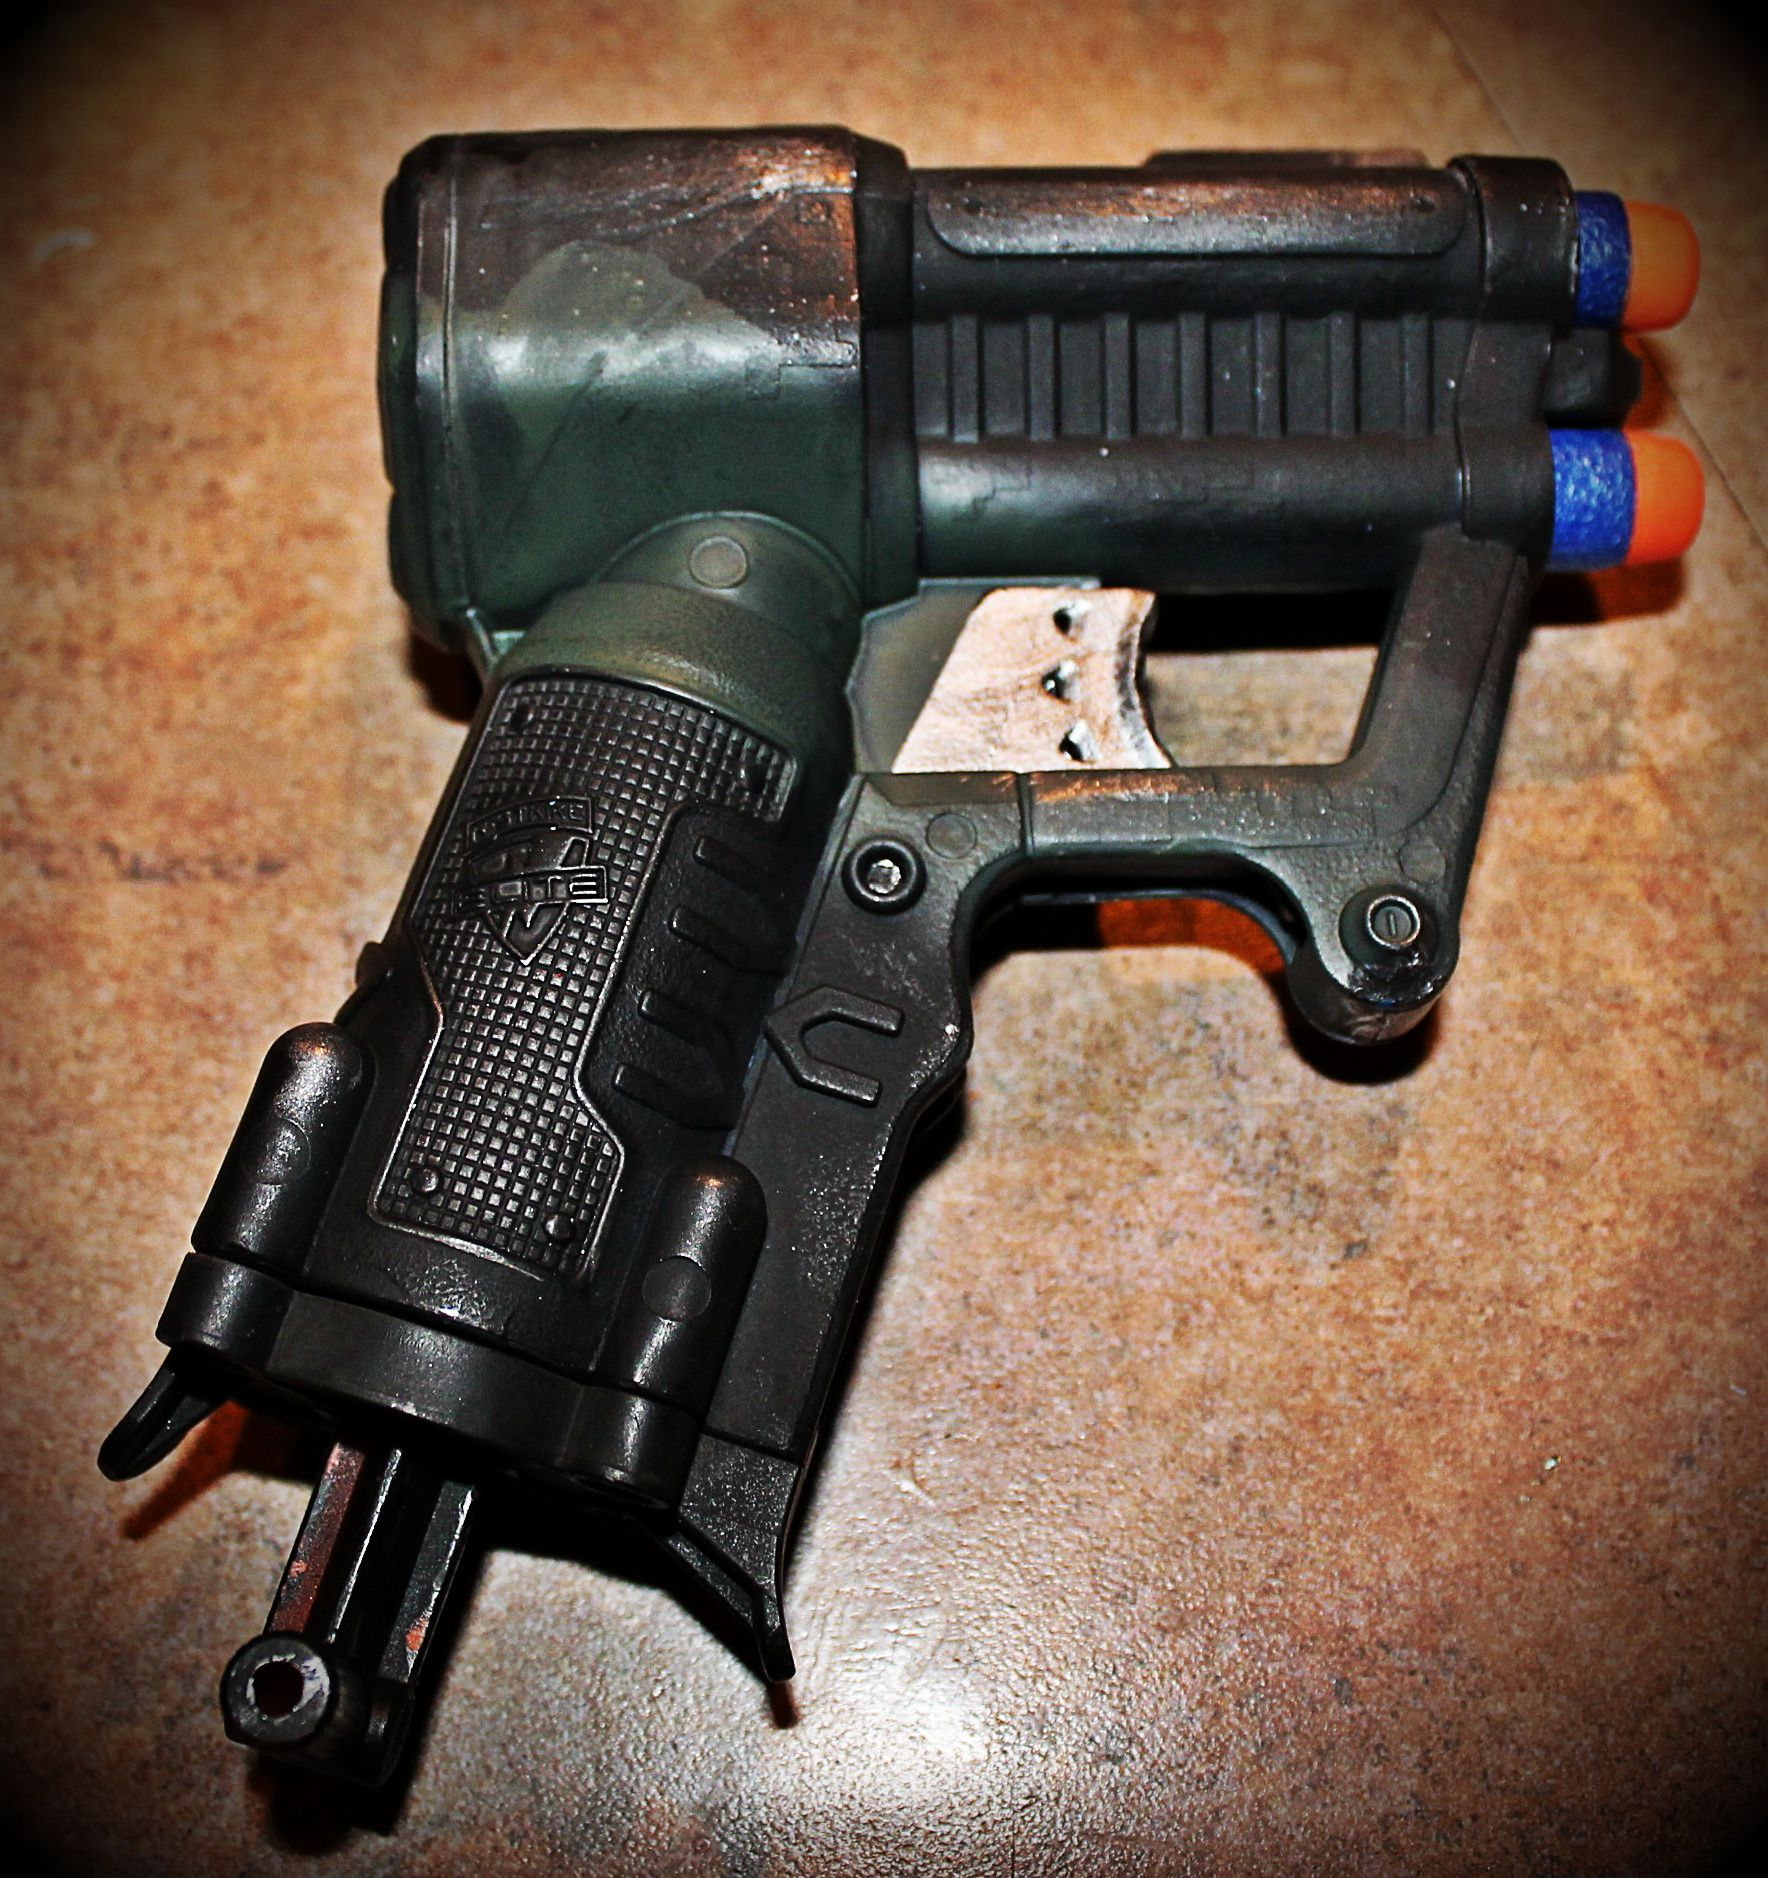 Painting your Nerf gun is a great way to complete that mod or turn it into a  fiercer looking blaster. Few tutorials exist, so here is a complete guide on